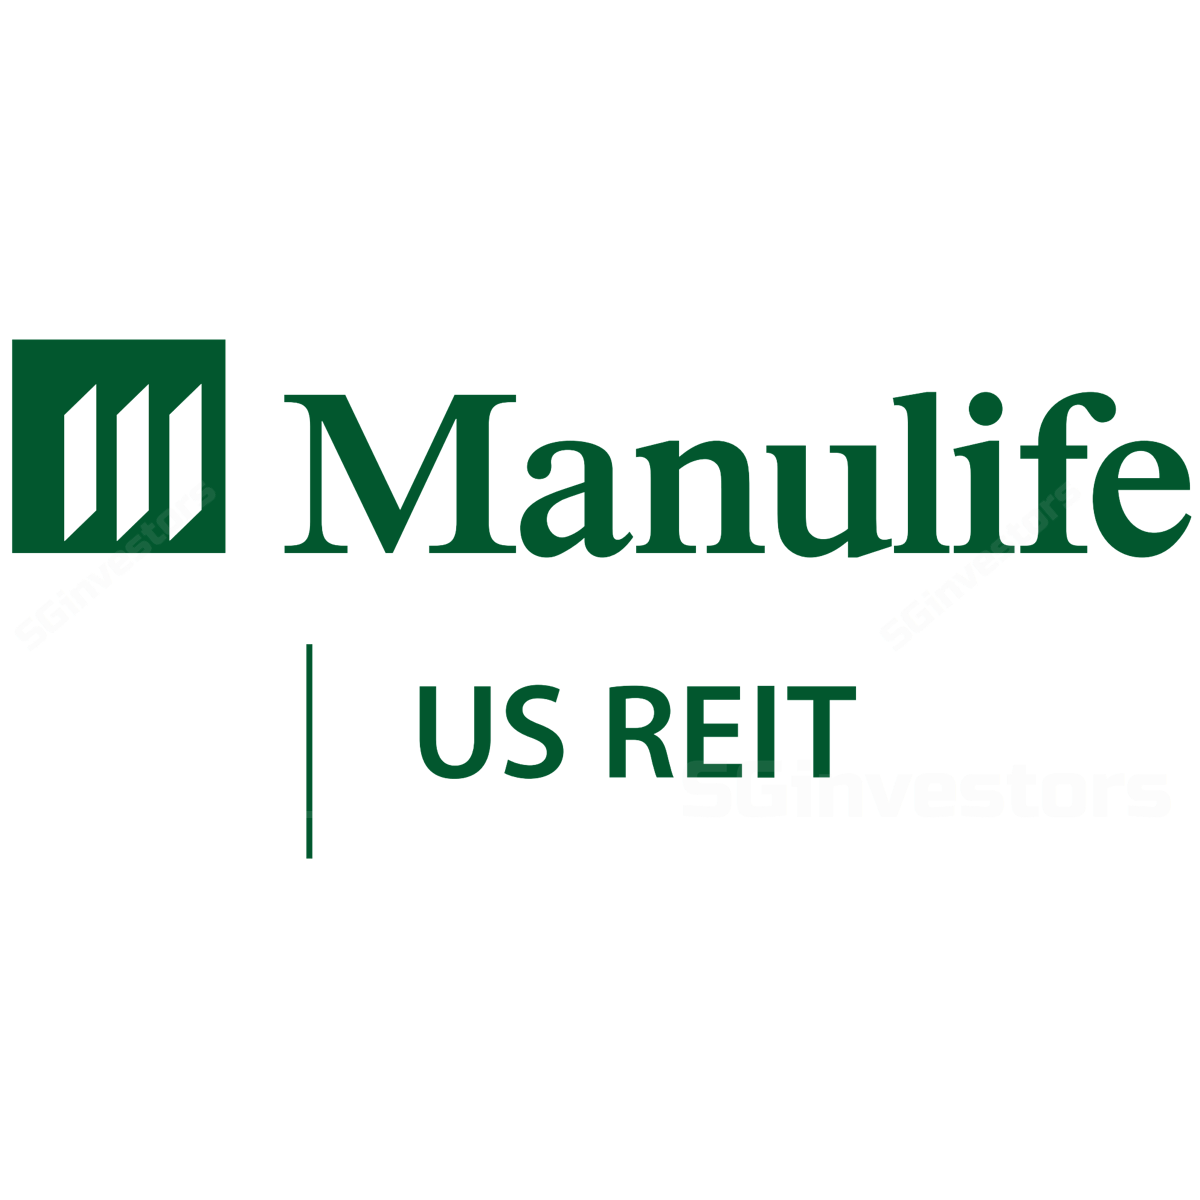 Manulife US Real Estate Inv - DBS Vickers 2017-02-14: Outperforming IPO estimates